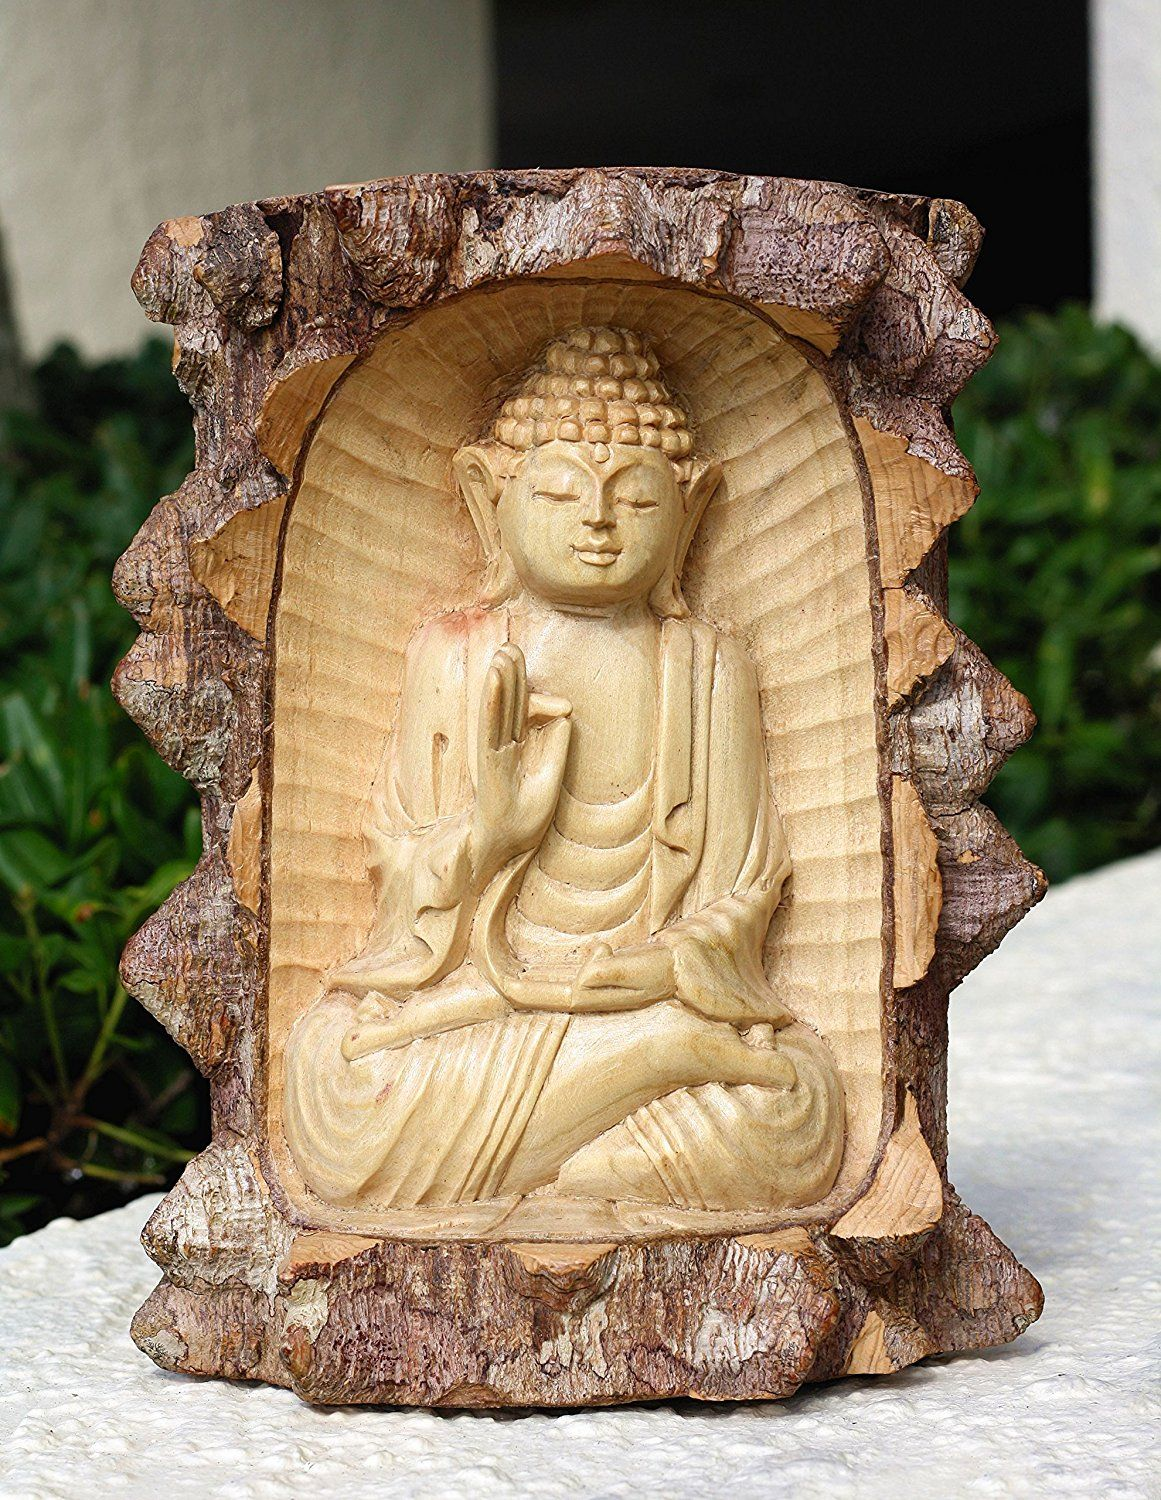 Wooden Hand Carved Buddha Statue Meditation From Crocodile Wood Home ...